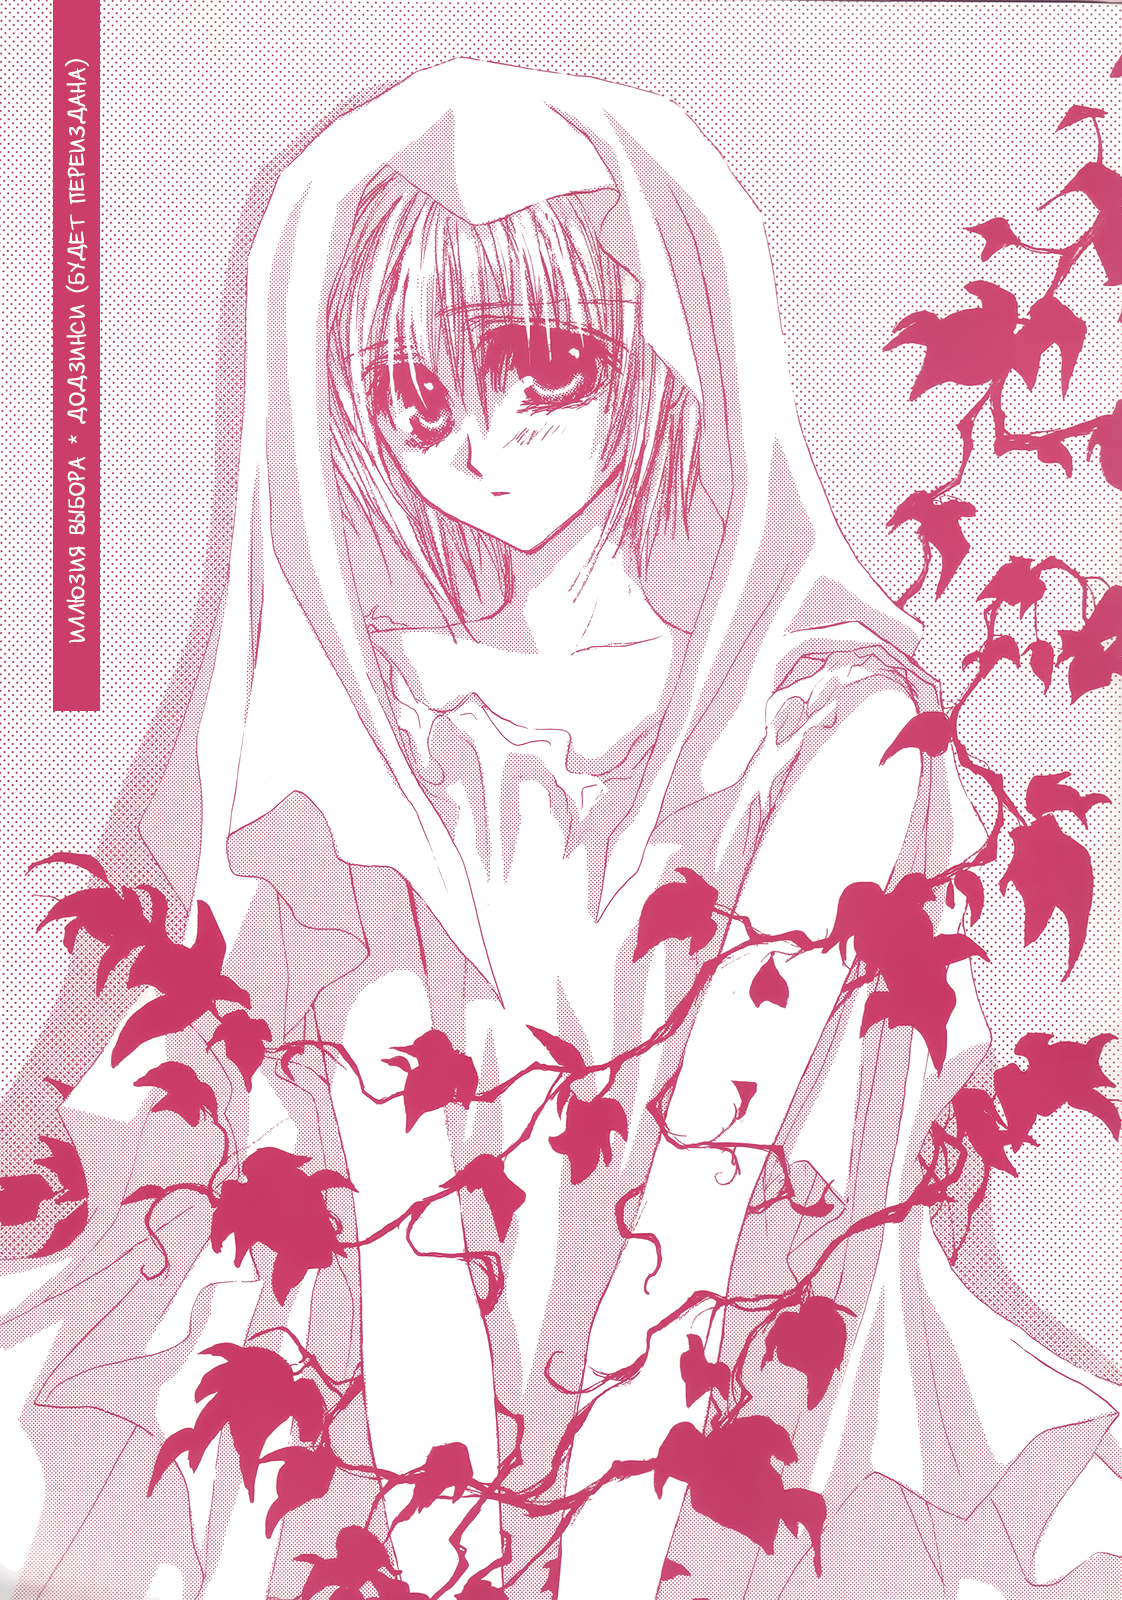 OGN_doujin_1_p01_[Midnight]